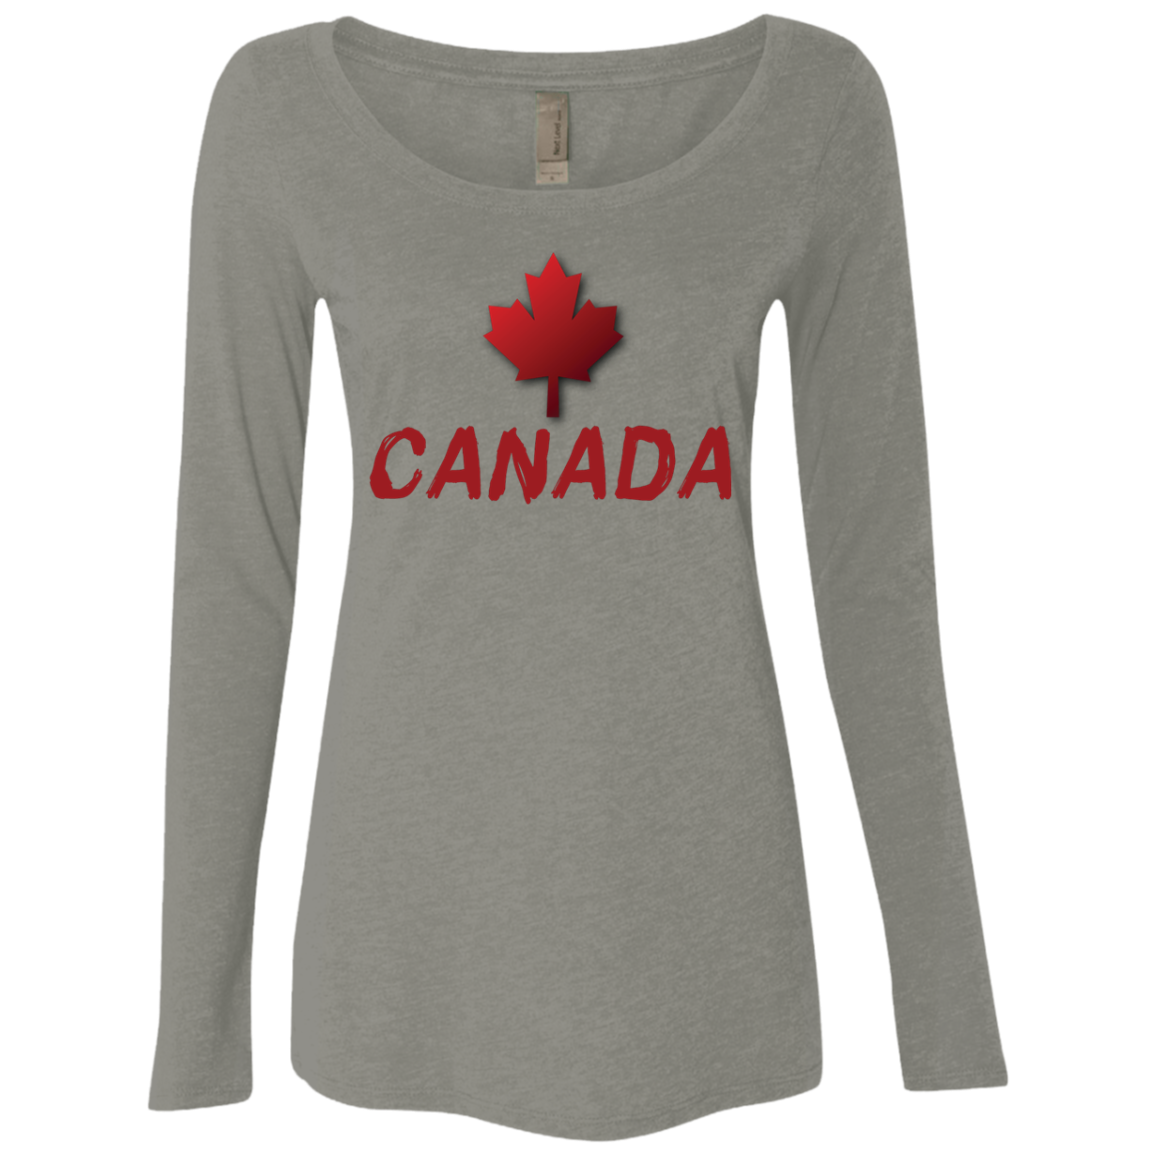 Canada Women's Long Sleeve Tee